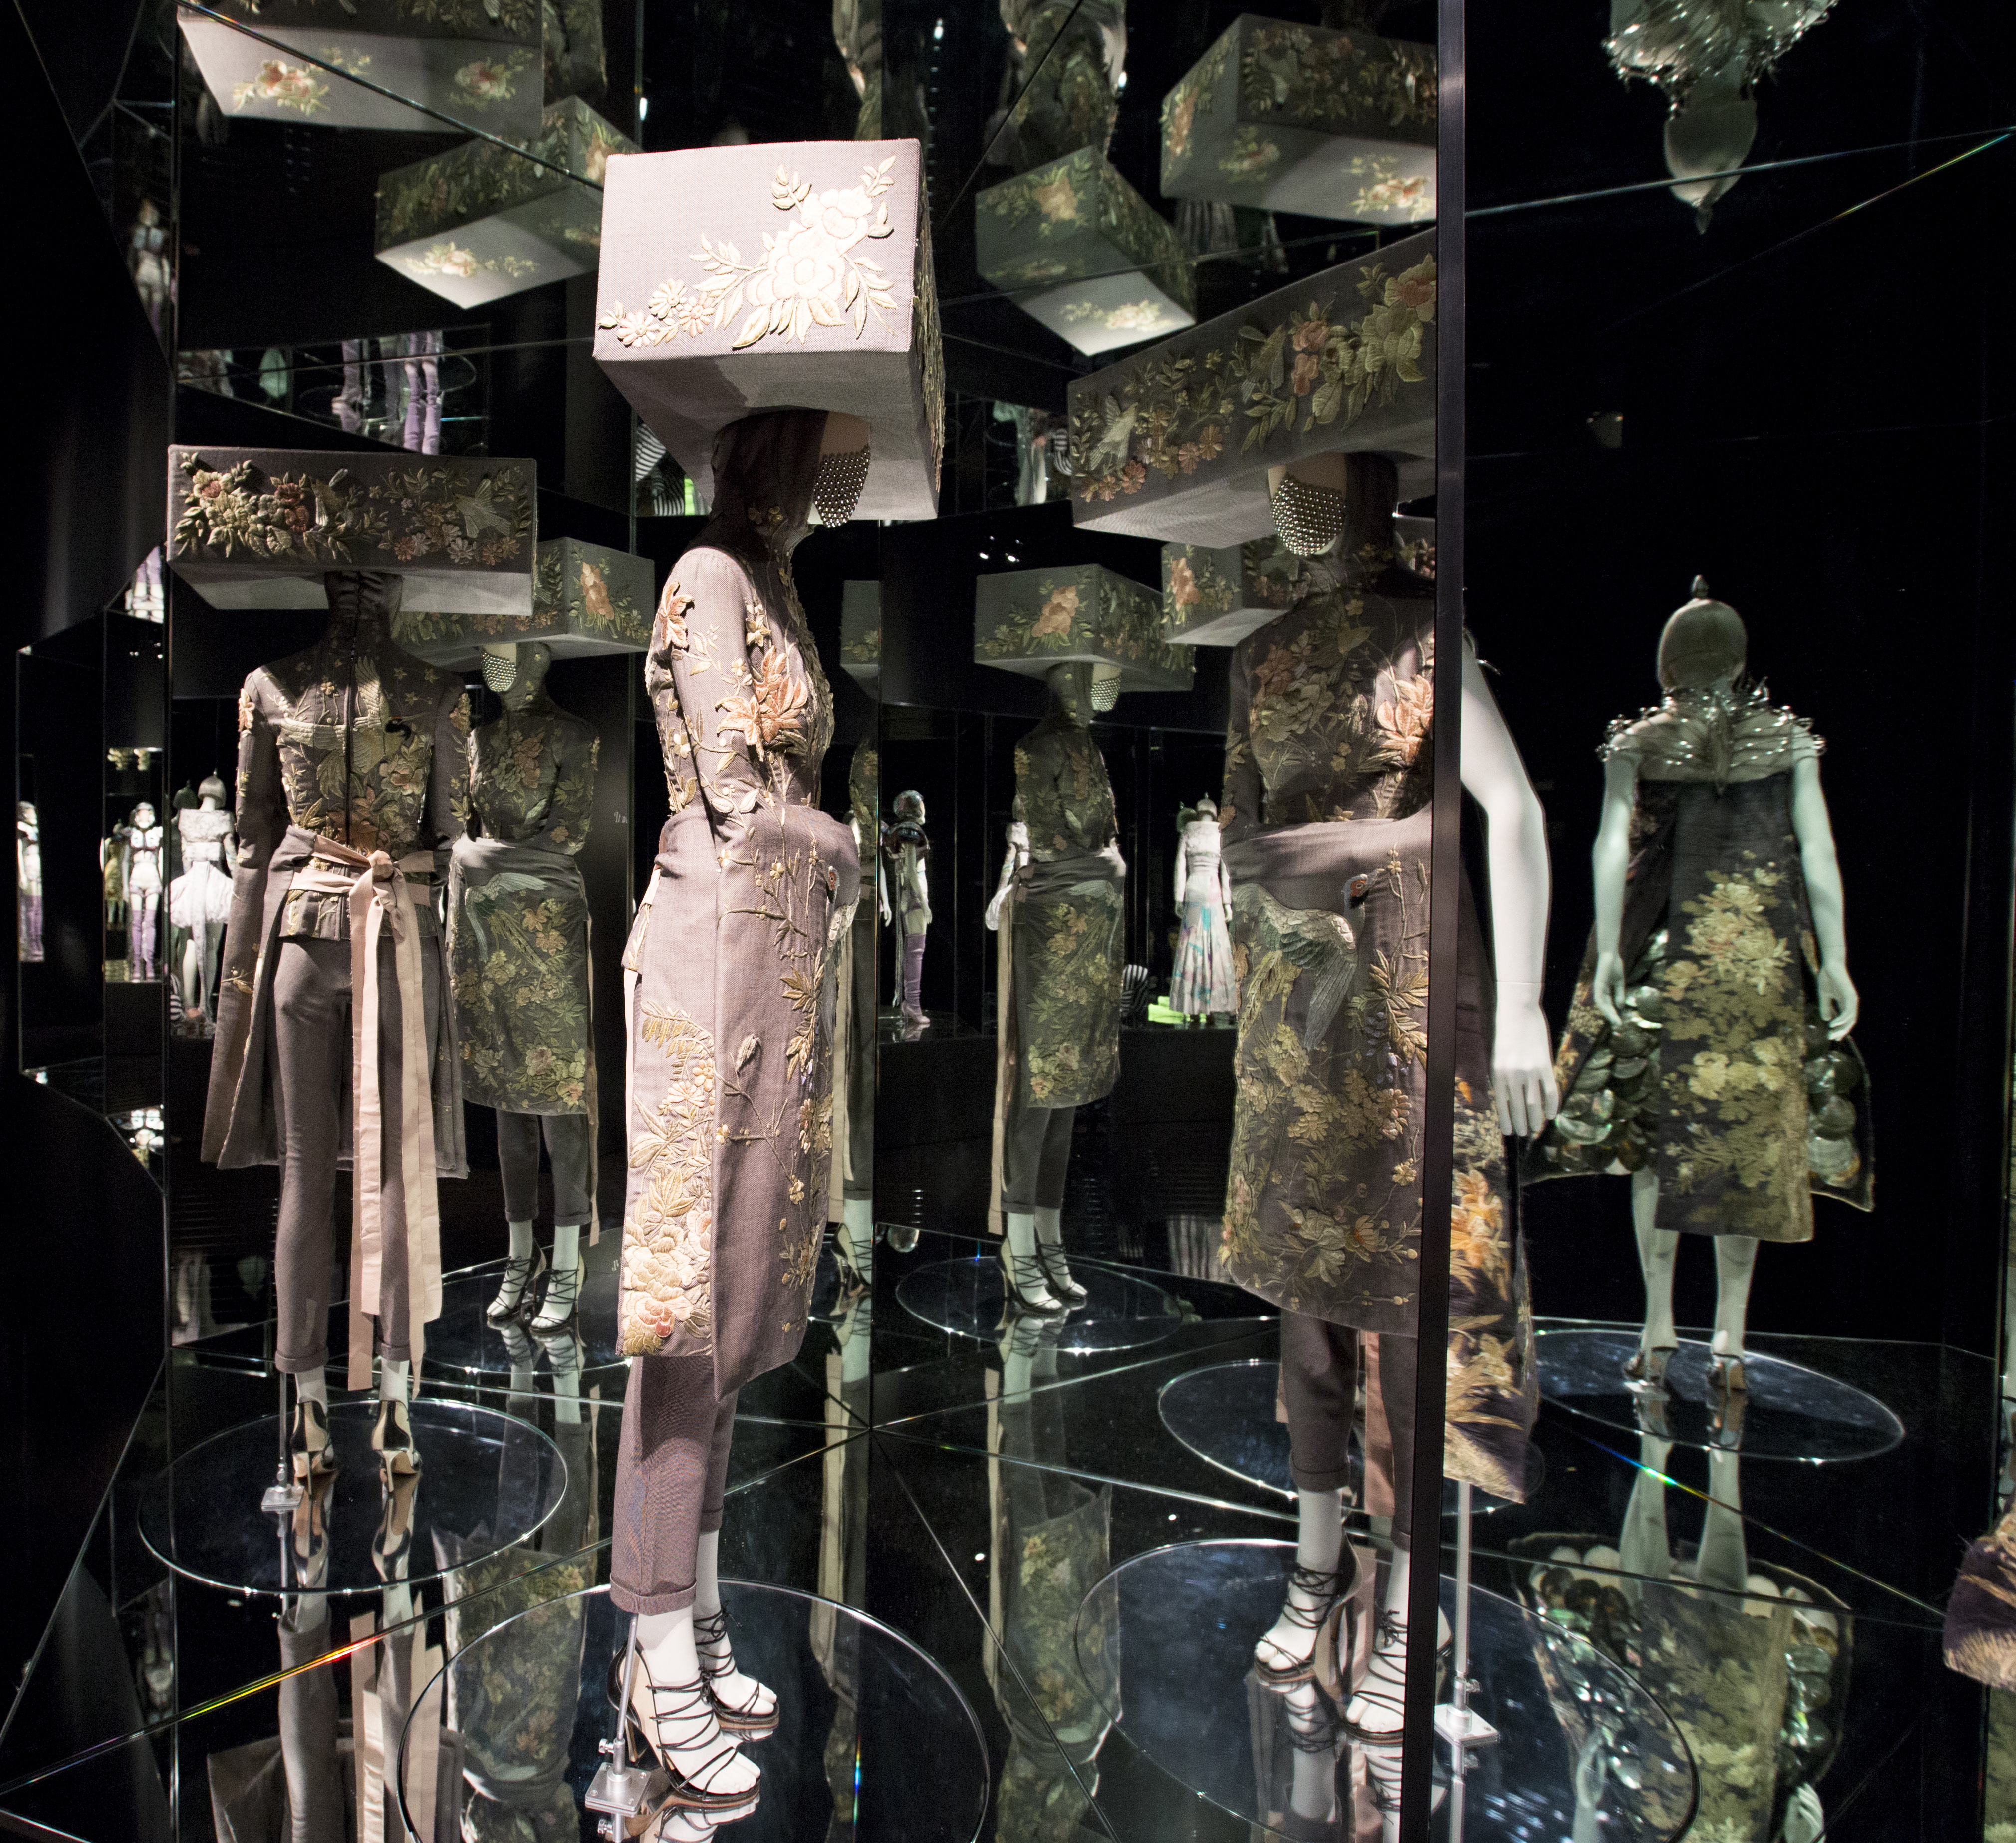 7._Installation_view_of_Romantic_Exoticism_gallery_Alexander_McQueen_Savage_Beauty_at_the_VA_c_Victoria_and_Albert_Museum_London